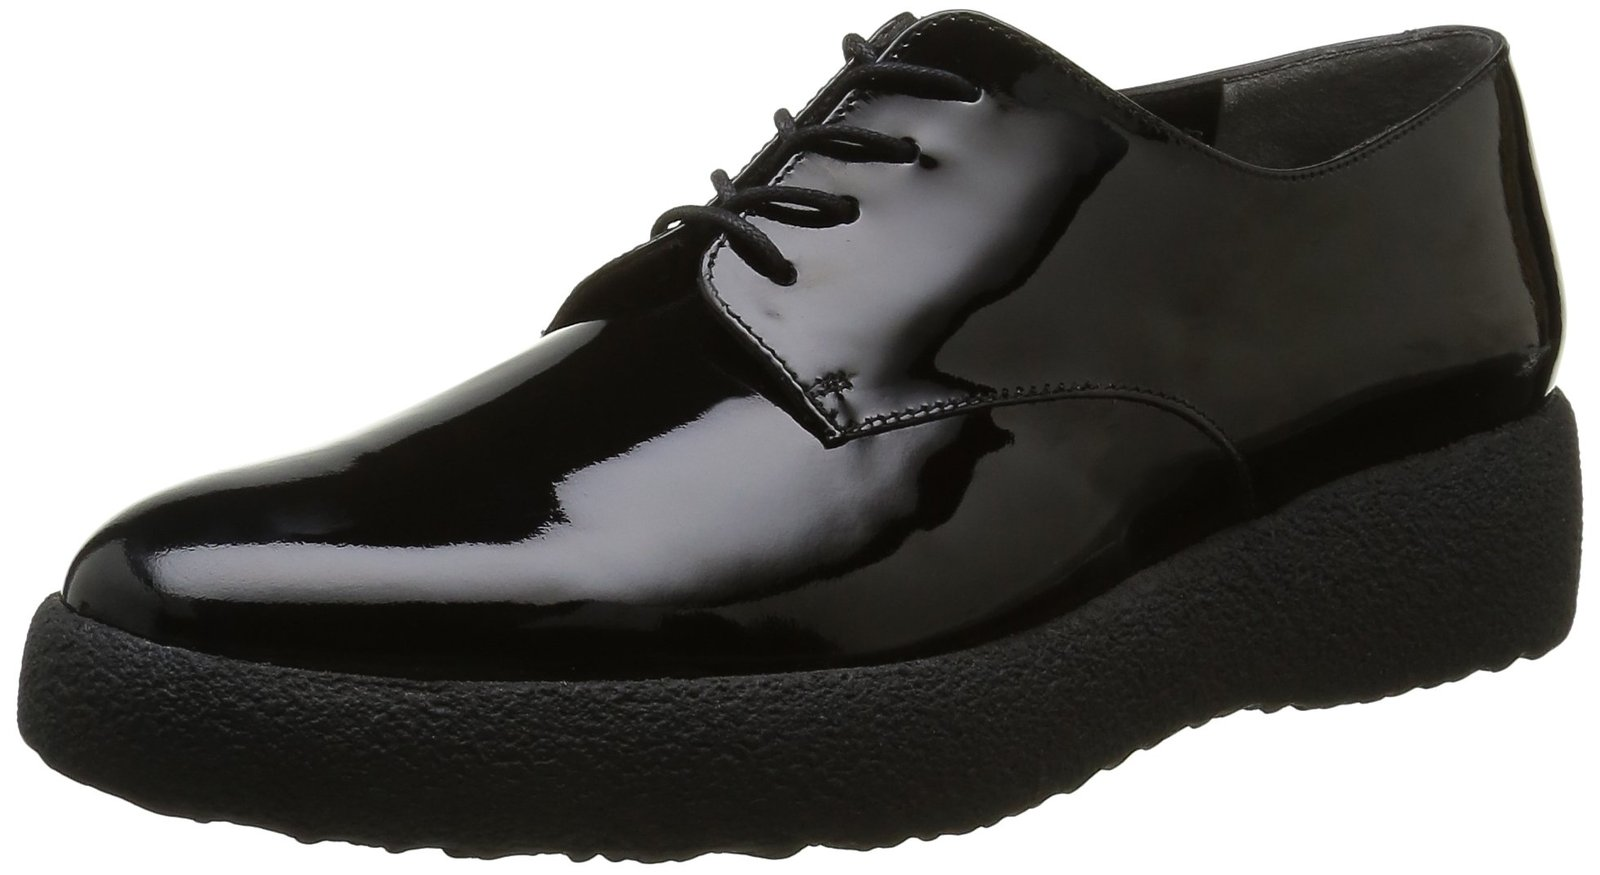 Robert Clergerie Women's Feydol, Black Patent, 38.5 EU/8 B US